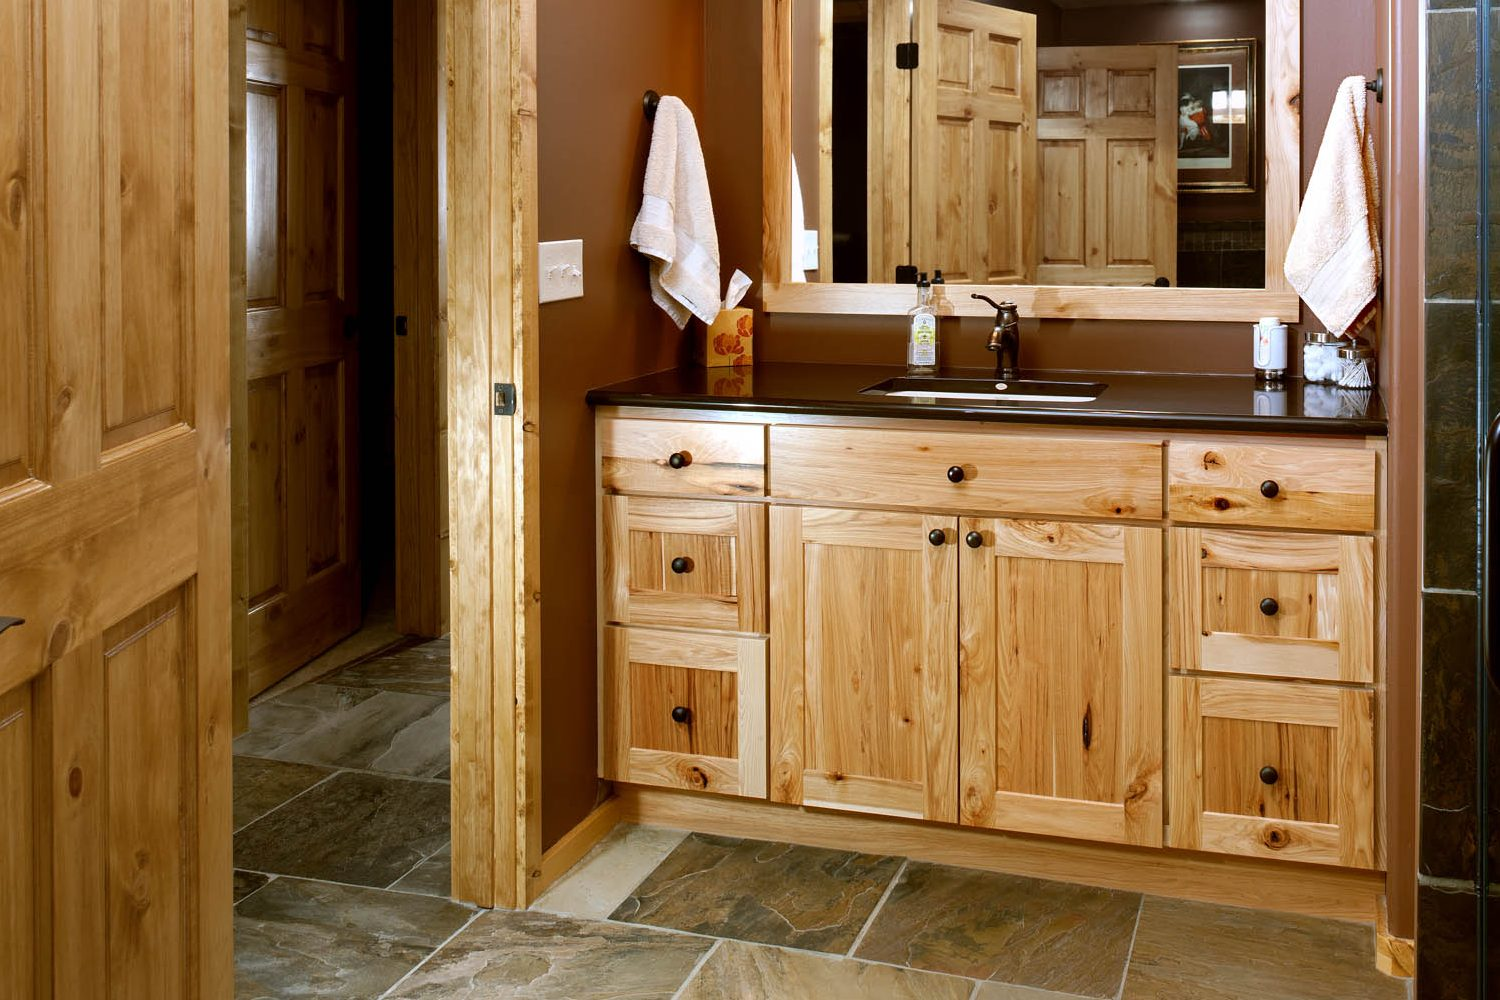 Stained guest bathroom vanity in Natural